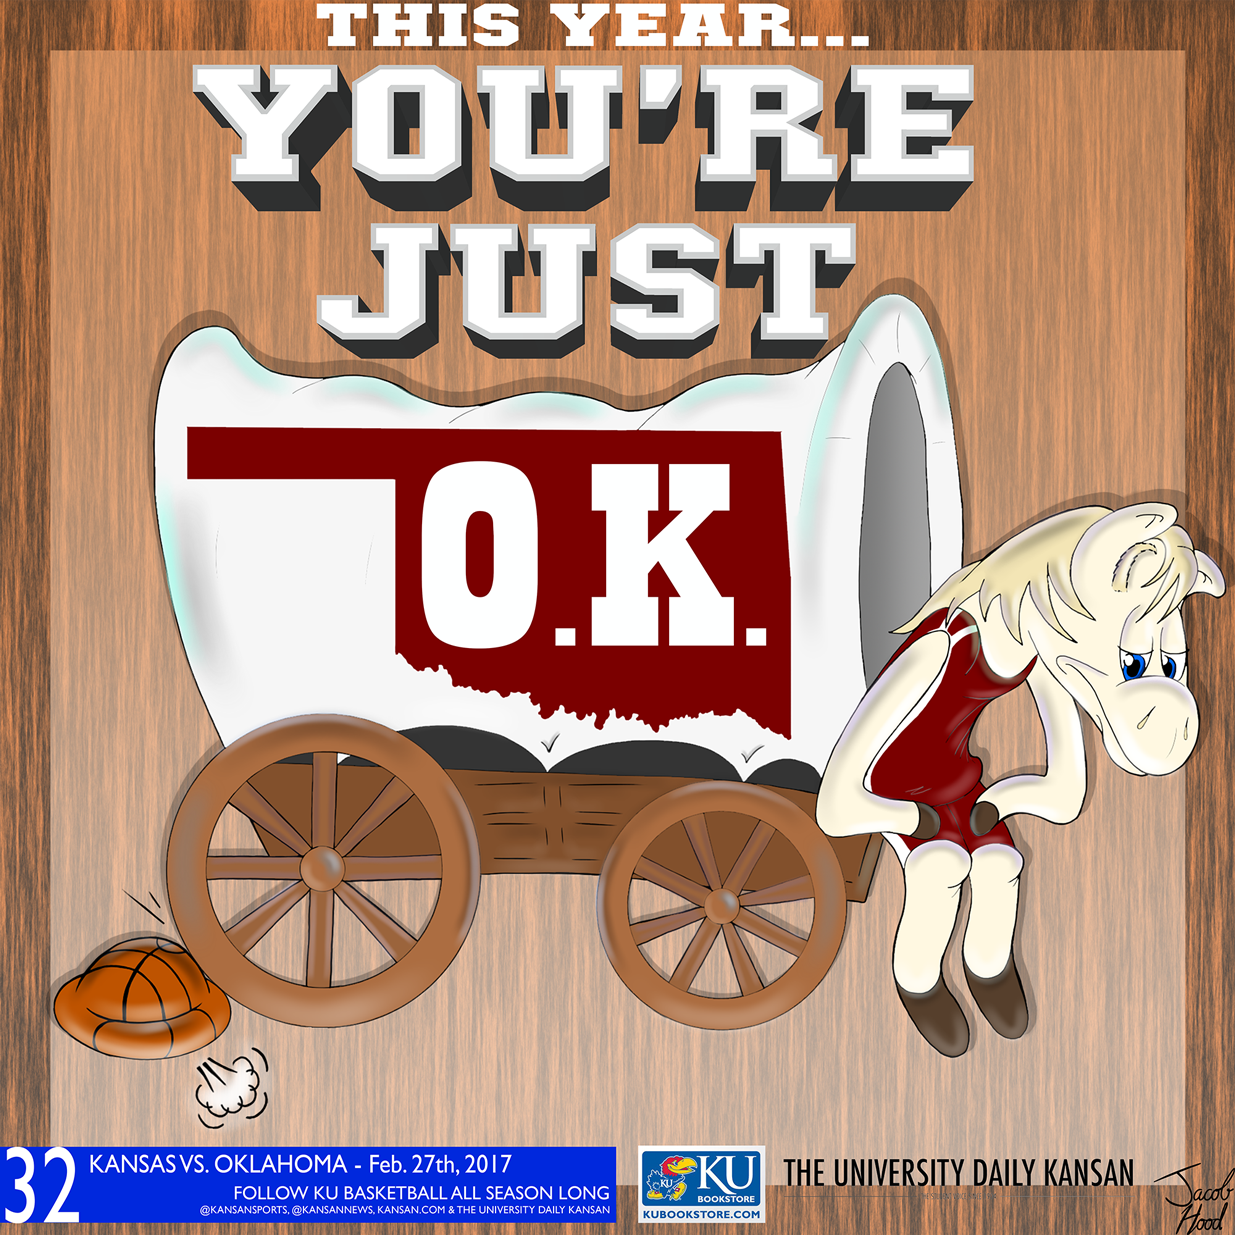 University Daily Kansan Basketball Gameday Poster - Oklahoma 2017